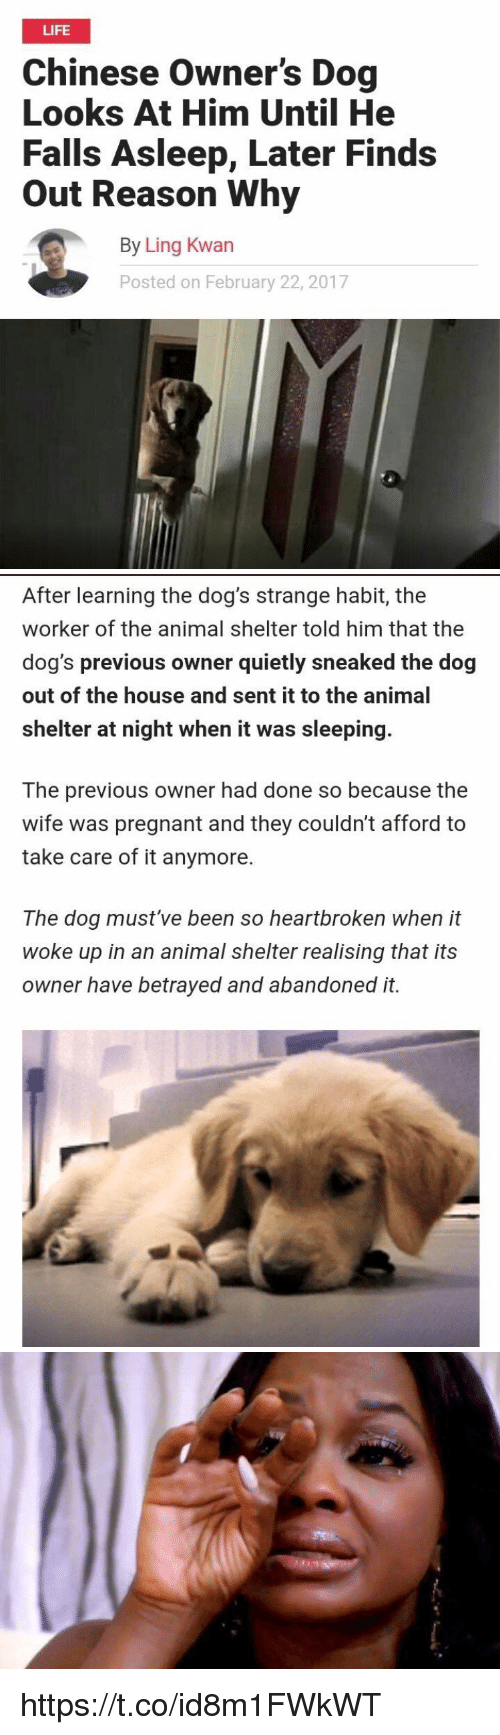 Dogs, Life, and Pregnant: LIFE  Chinese Owner's Dog  Looks At Him Until He  Falls Asleep, Later Finds  Out Reason Why  By Ling Kwan  Posted on February 22, 2017   After learning the dog's strange habit, the  worker of the animal shelter told him that the  dog's previous owner quietly sneaked the dog  out of the house and sent it to the animal  shelter at night when it was sleeping.  The previous owner had done so because the  wife was pregnant and they couldn't afford to  take care of it anymore.  The dog must've been so heartbroken when it  woke up in an animal shelter realising that its  owner have betrayed and abandoned it. https://t.co/id8m1FWkWT